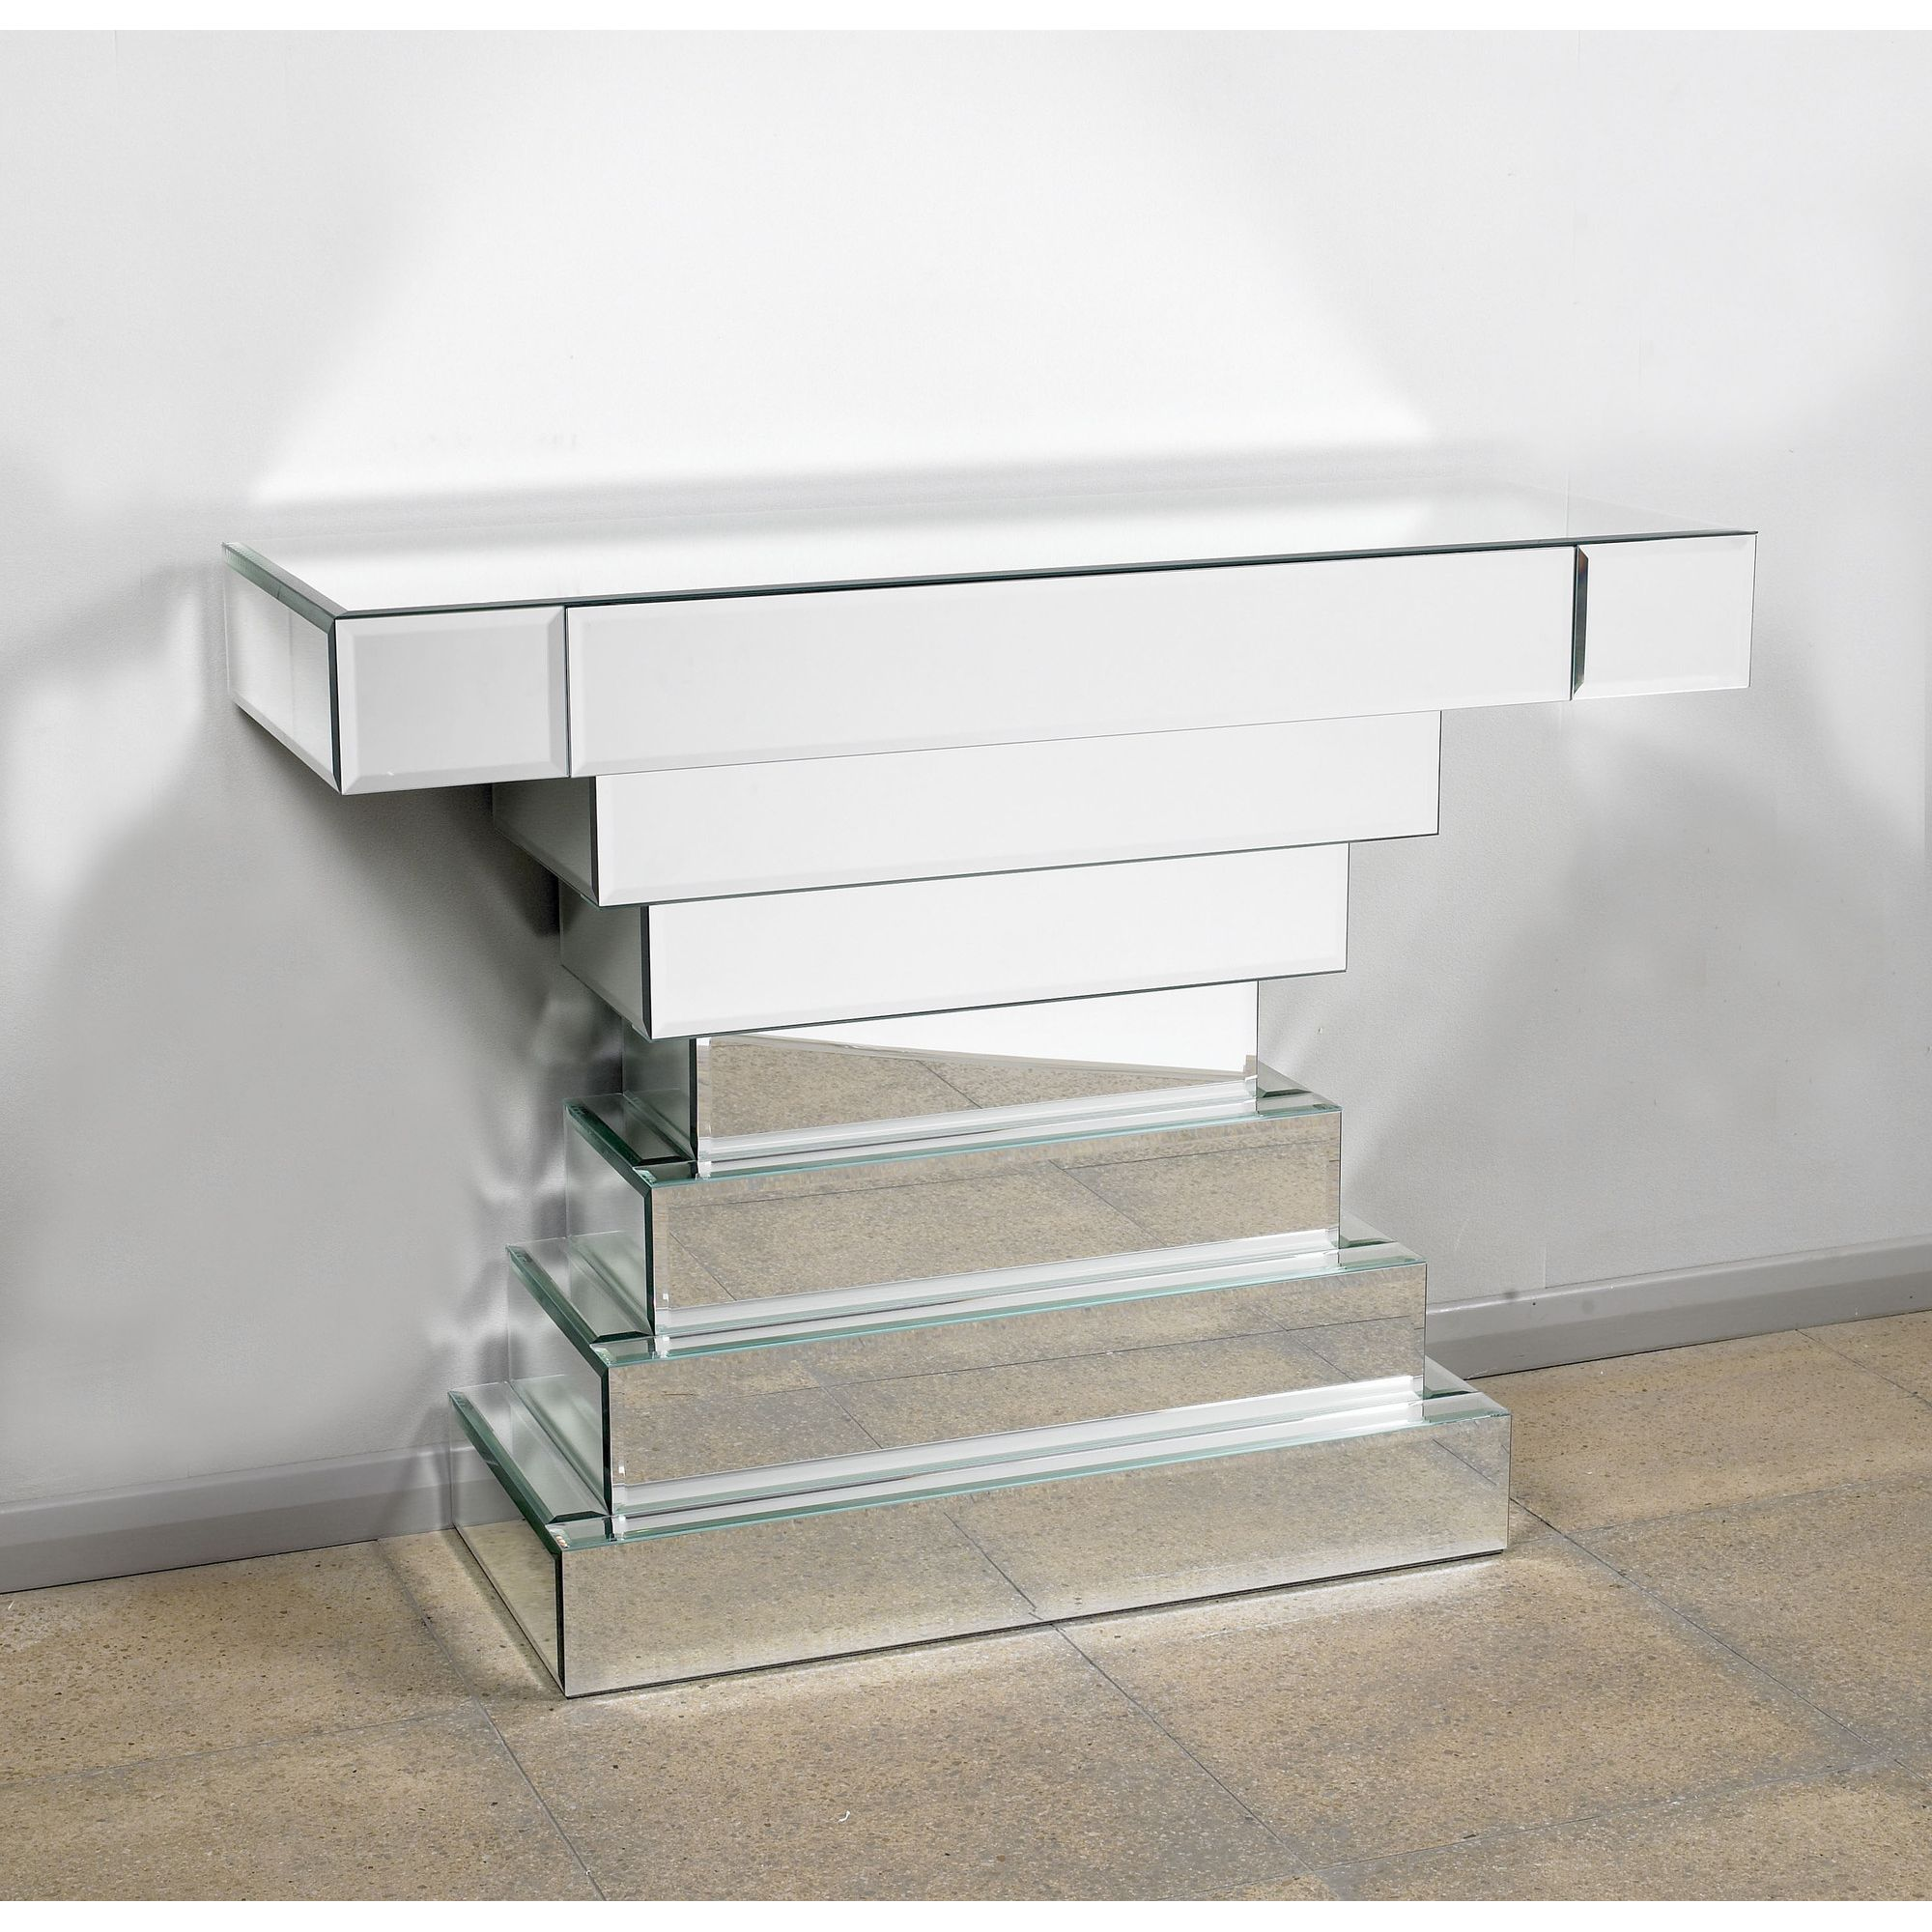 Morris Mirrors Ltd One Drawer Console Table in Silver at Tesco Direct